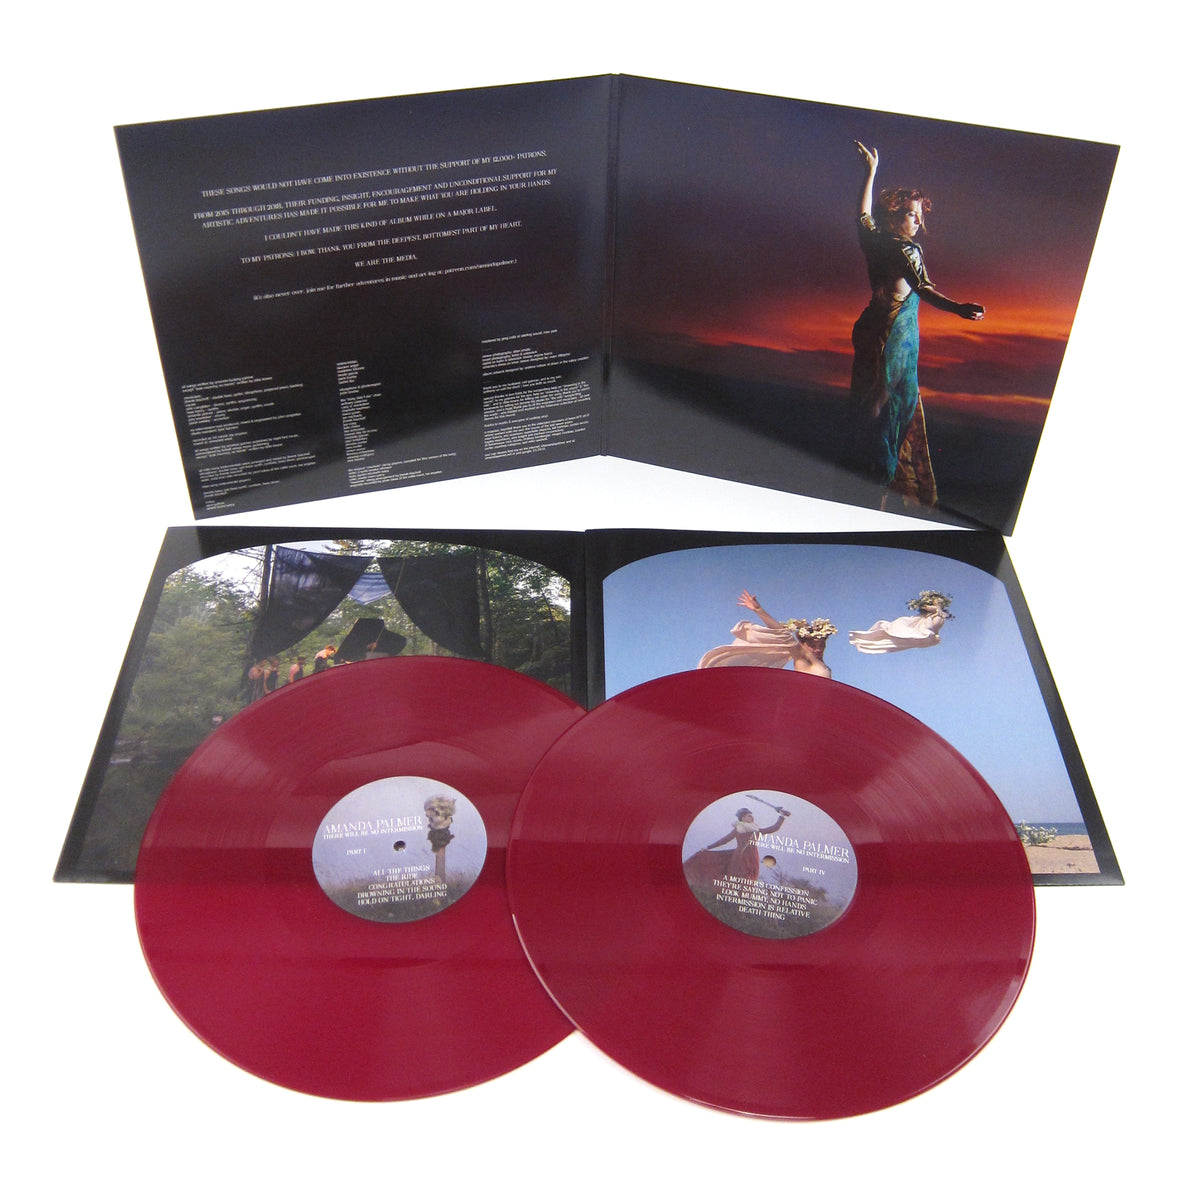 Amanda Palmer: There Will Be No Intermission (Indie Exclusive Colored Vinyl) Vinyl LP